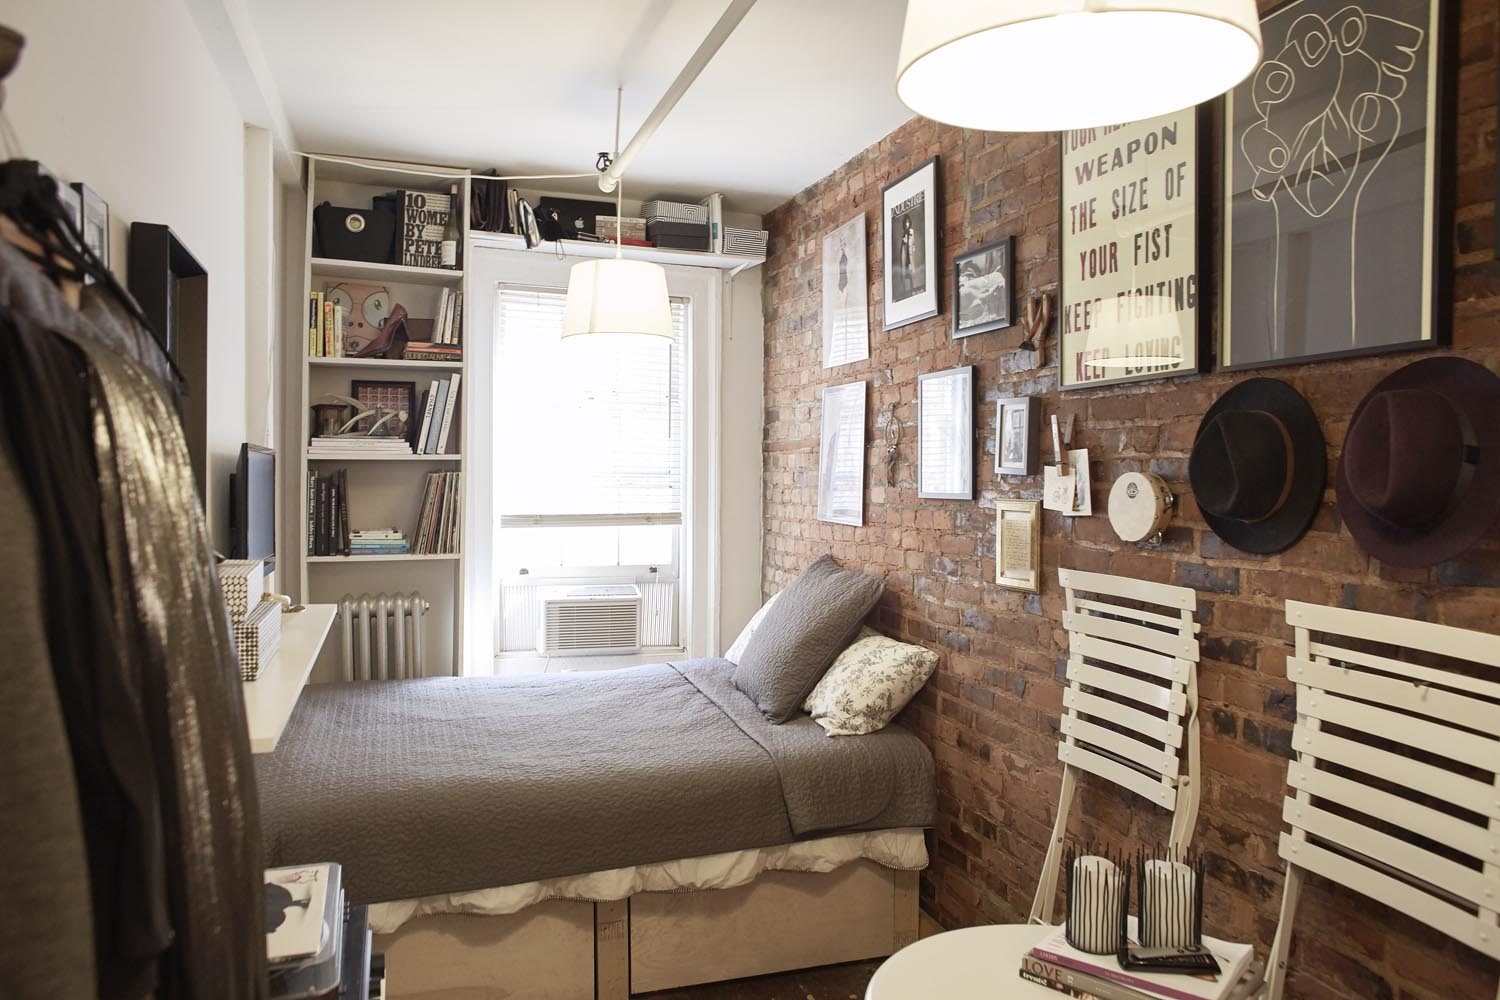 Mary Helen Rowell Uses MakeSpace To Live Happily In 90 Sq Ft on 90 Room  id=84990